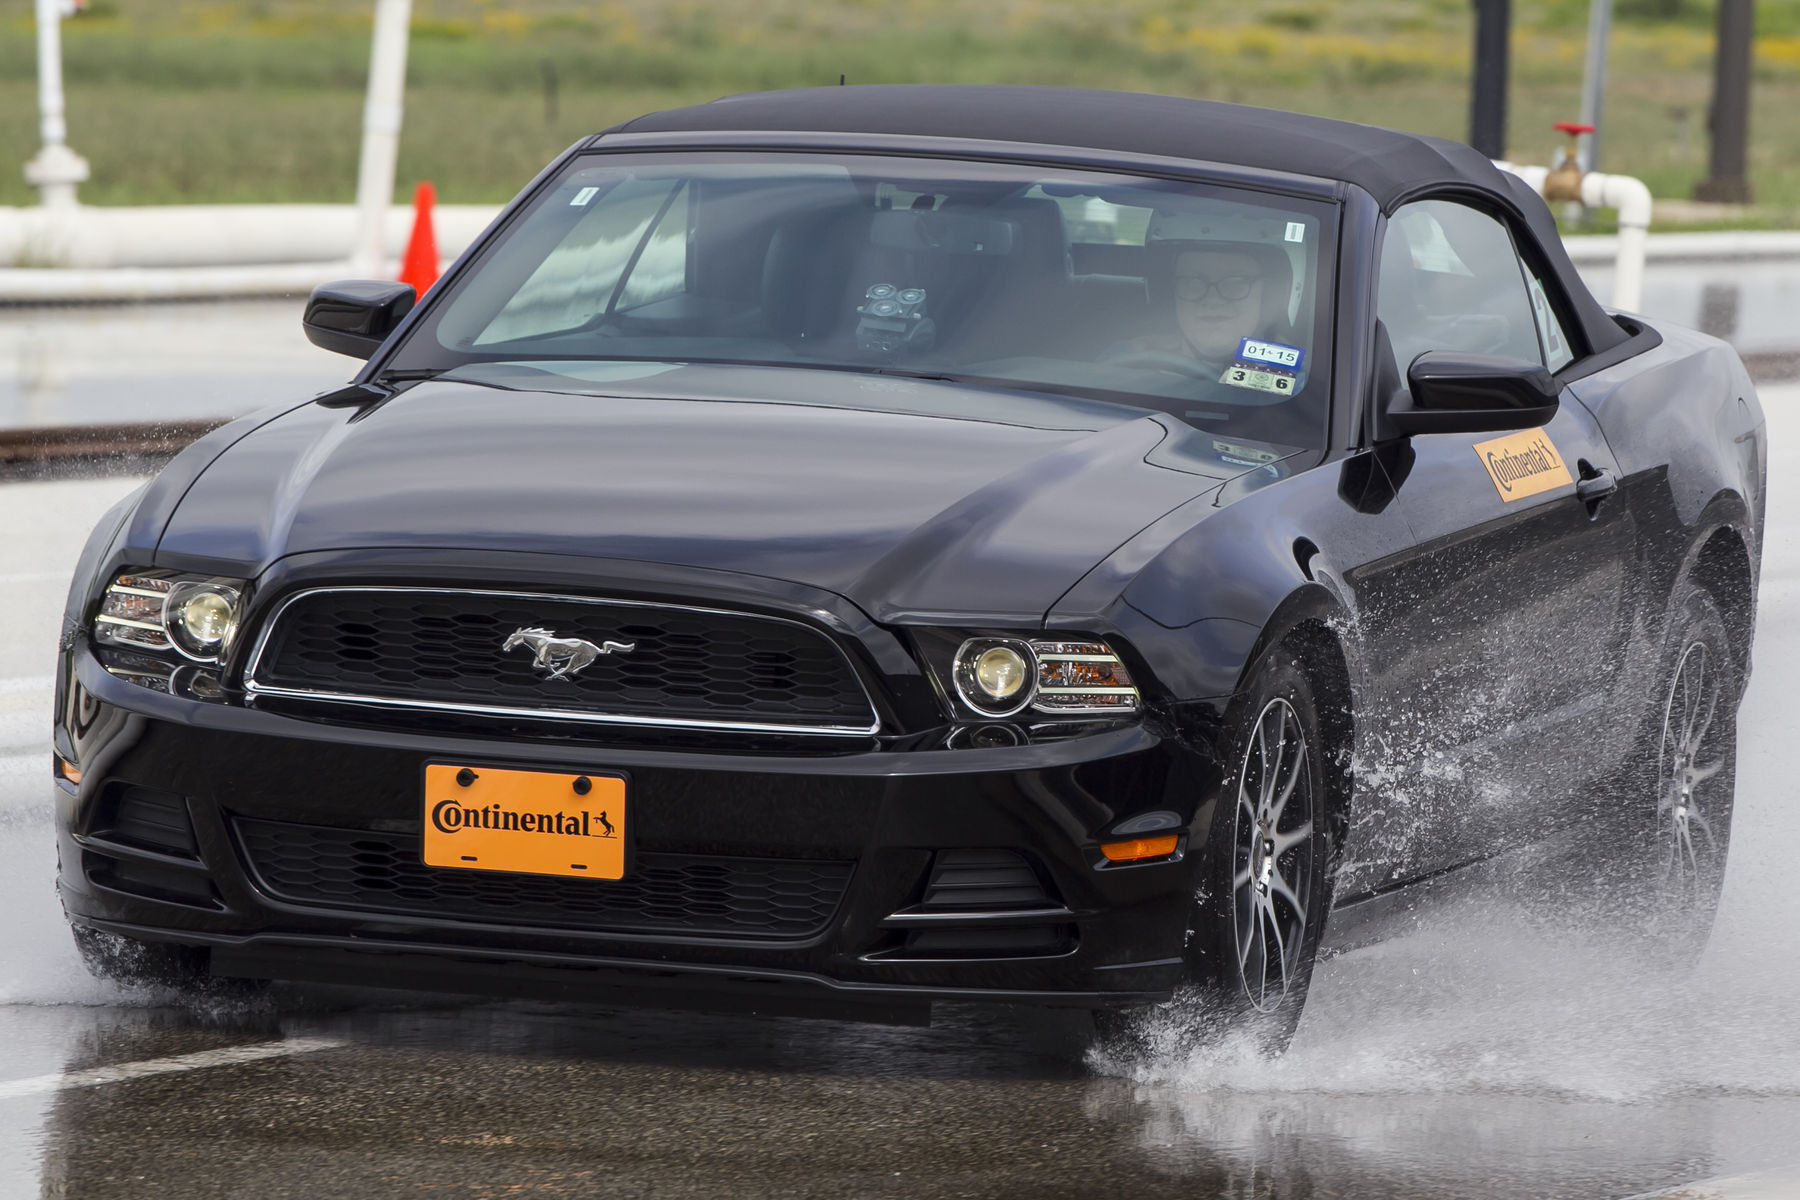 | Wet braking in the mustang, done by Greeble Monkey (Haus)